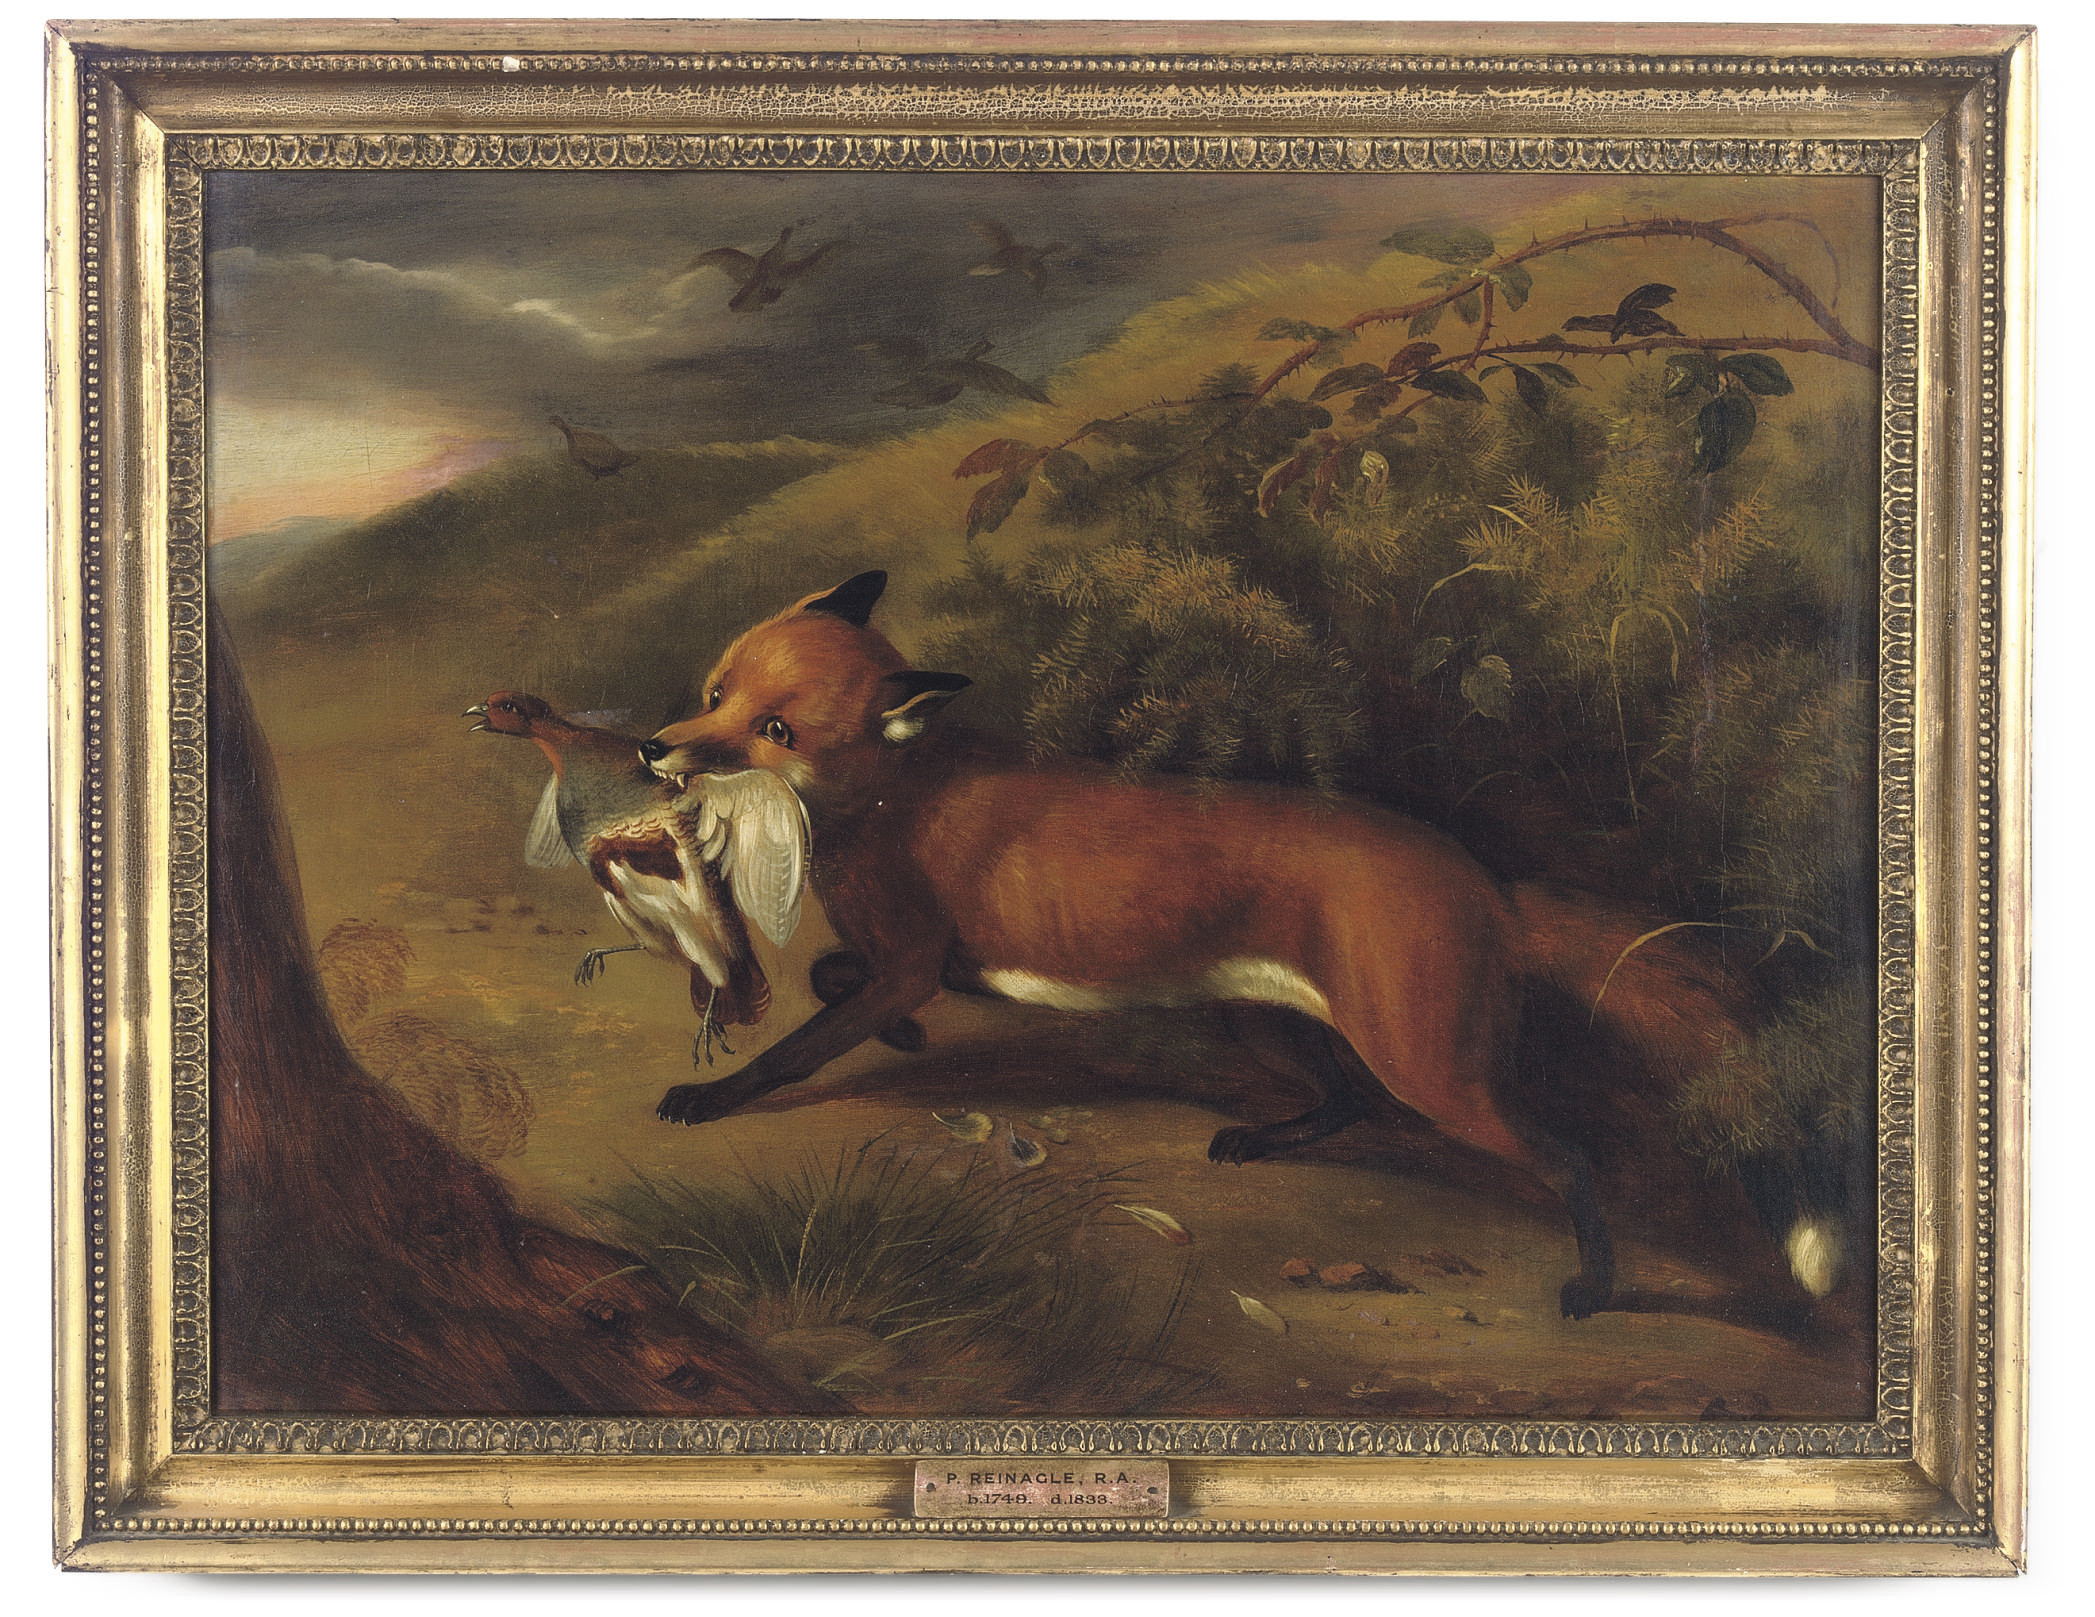 ATTRIBUTED TO PHILIP REINAGLE, R.A. (BRITISH, 1749-1833)